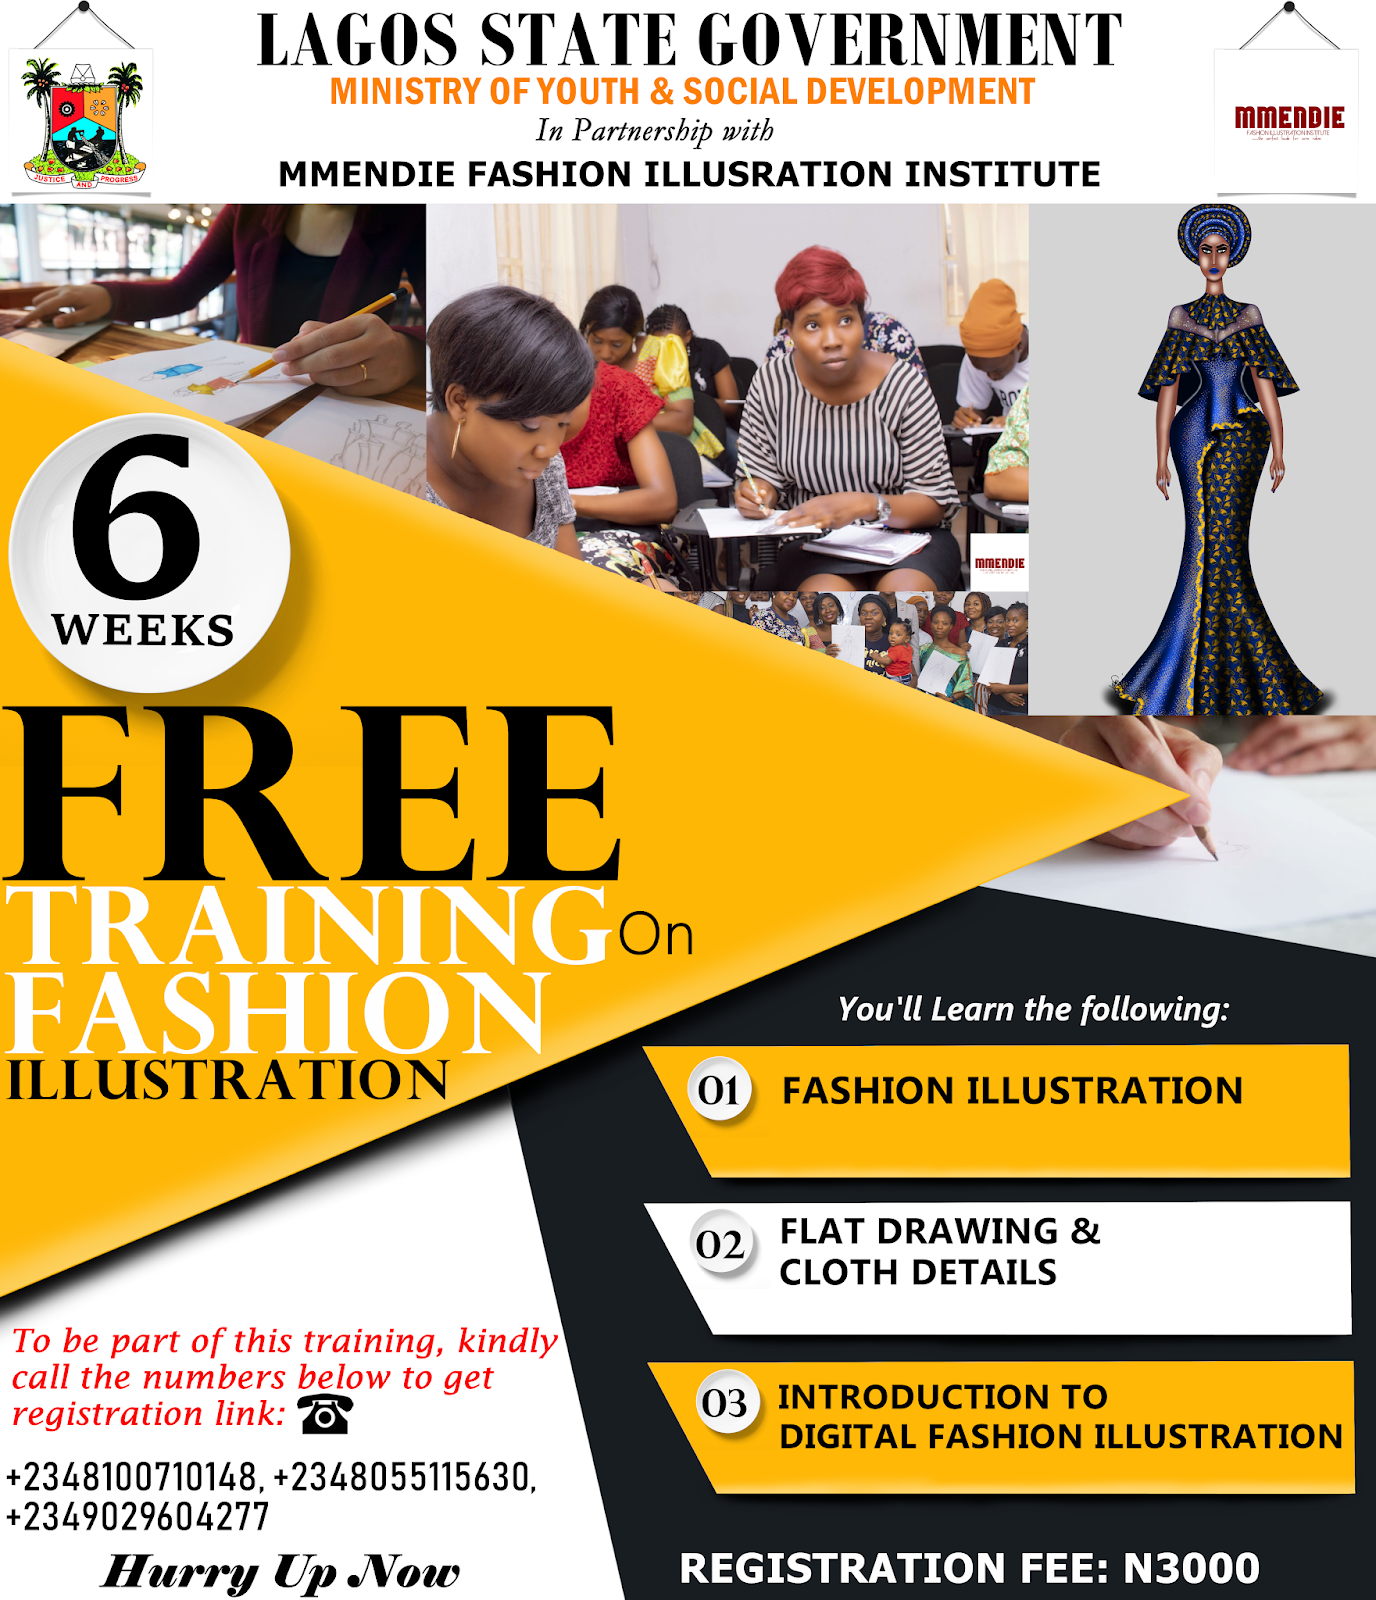 Mmendie Fashion Illustration Institute Goes Into Partnership With Lagos State Government Ministry Of Youth Social Development Six Weeks Training On Fashion Illustration